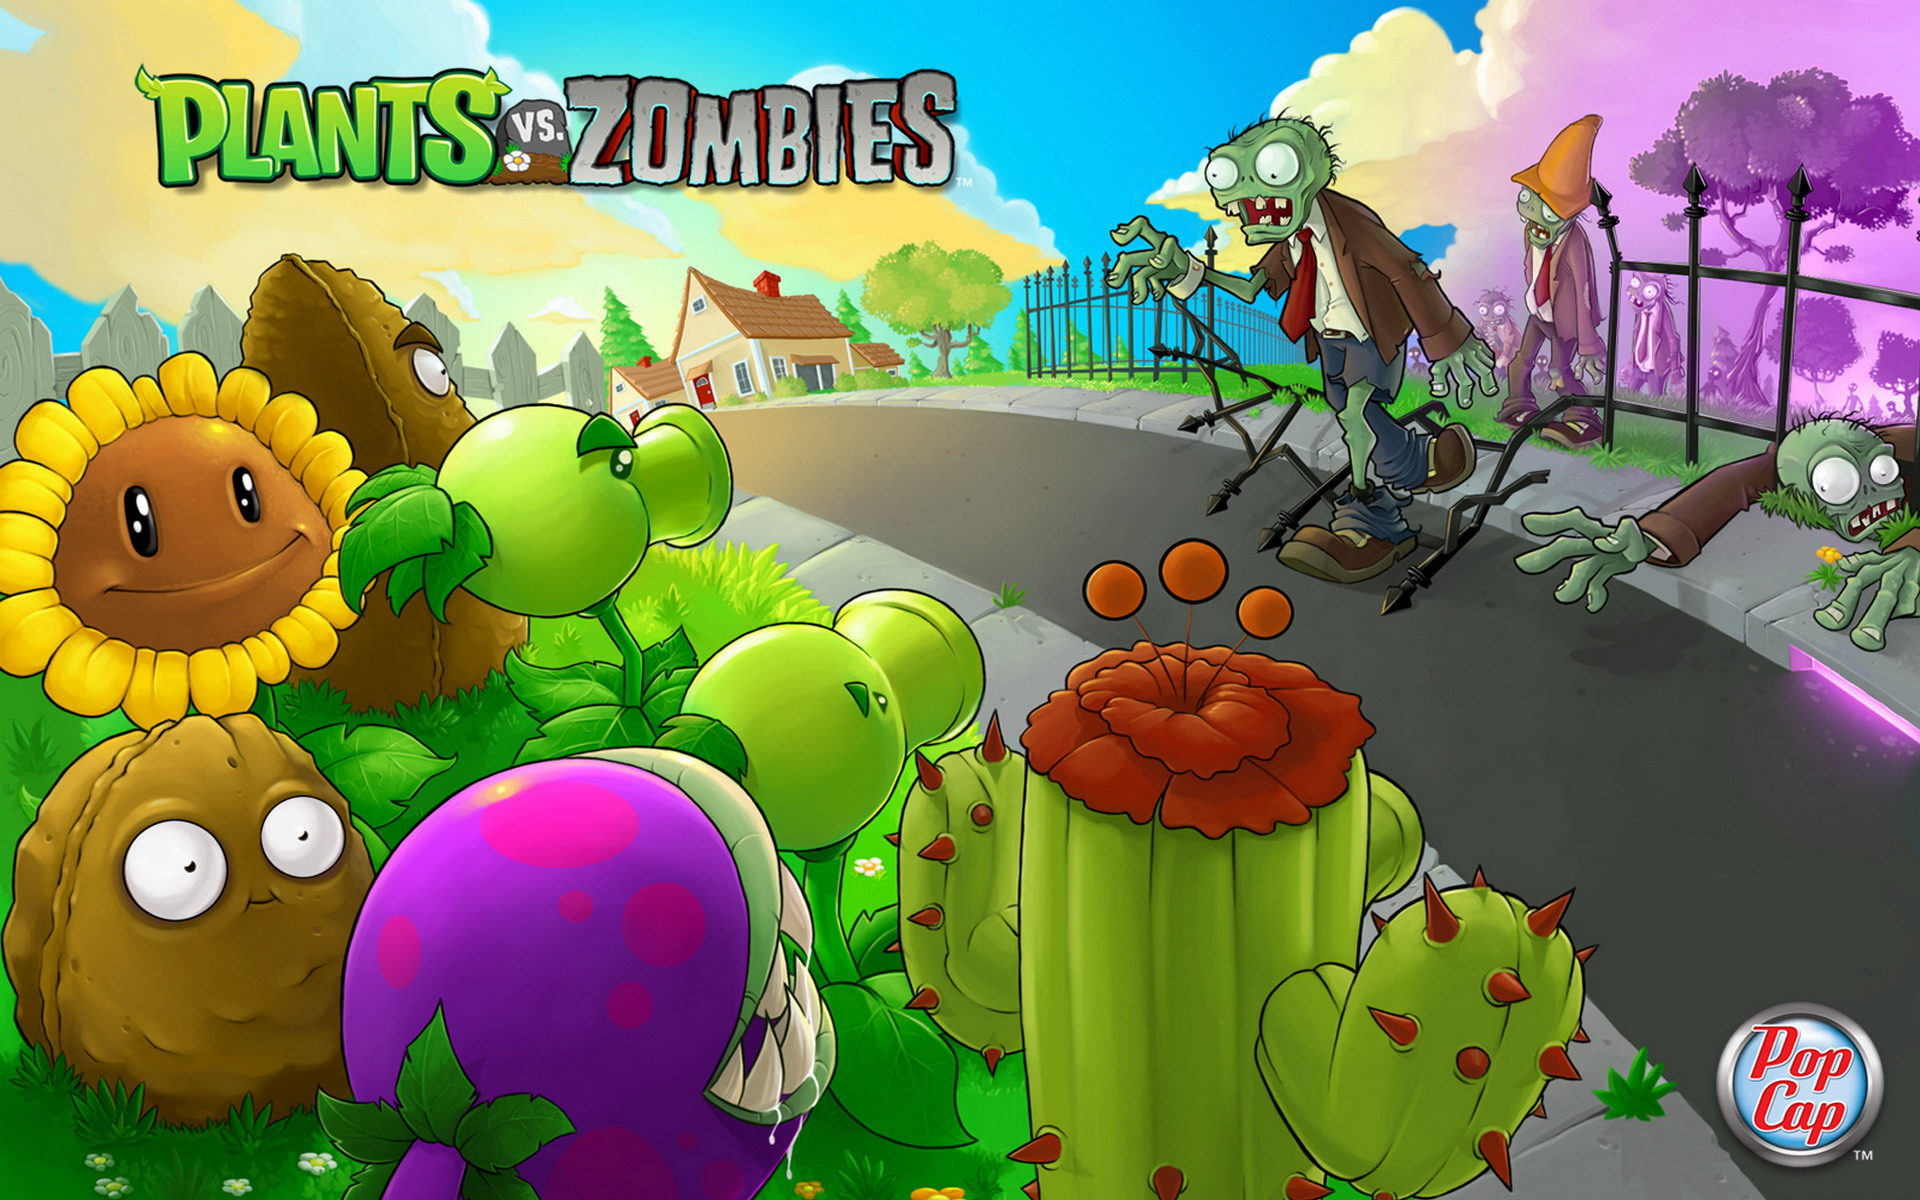 Plants vs. Zombies - 1920x1200